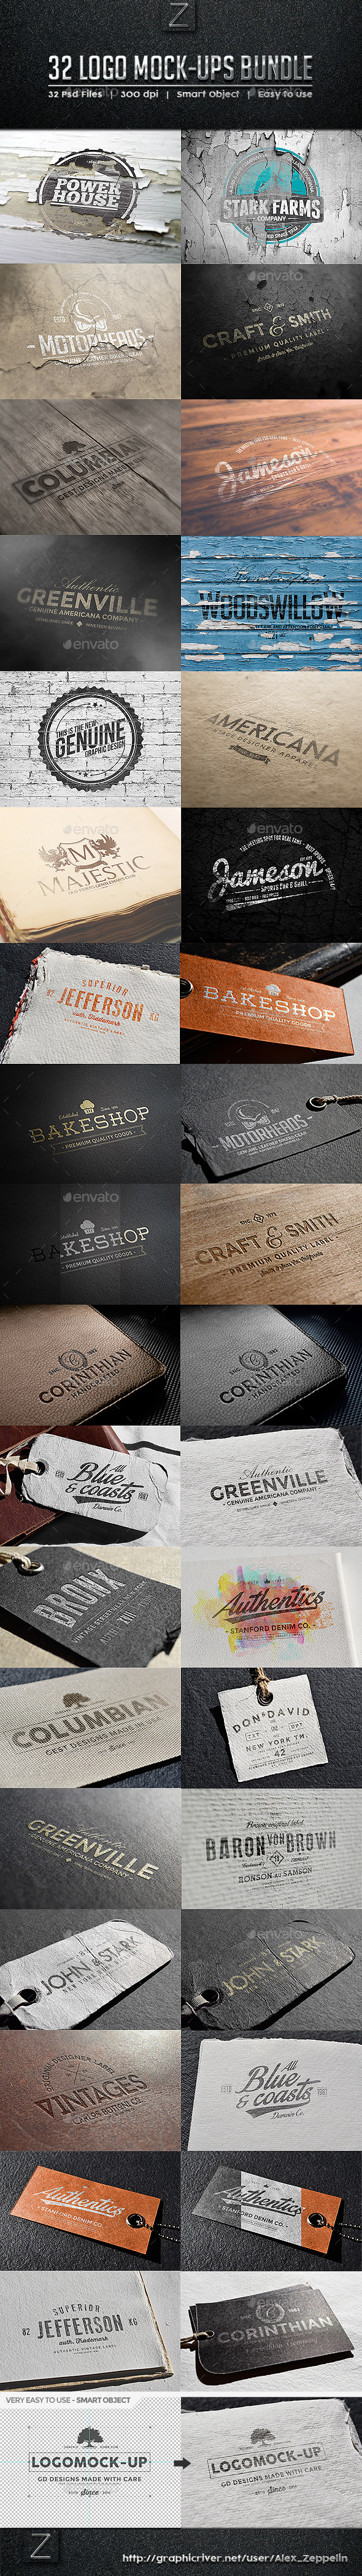 32 Logo Mock-ups Bundle - Logo Product Mock-Ups